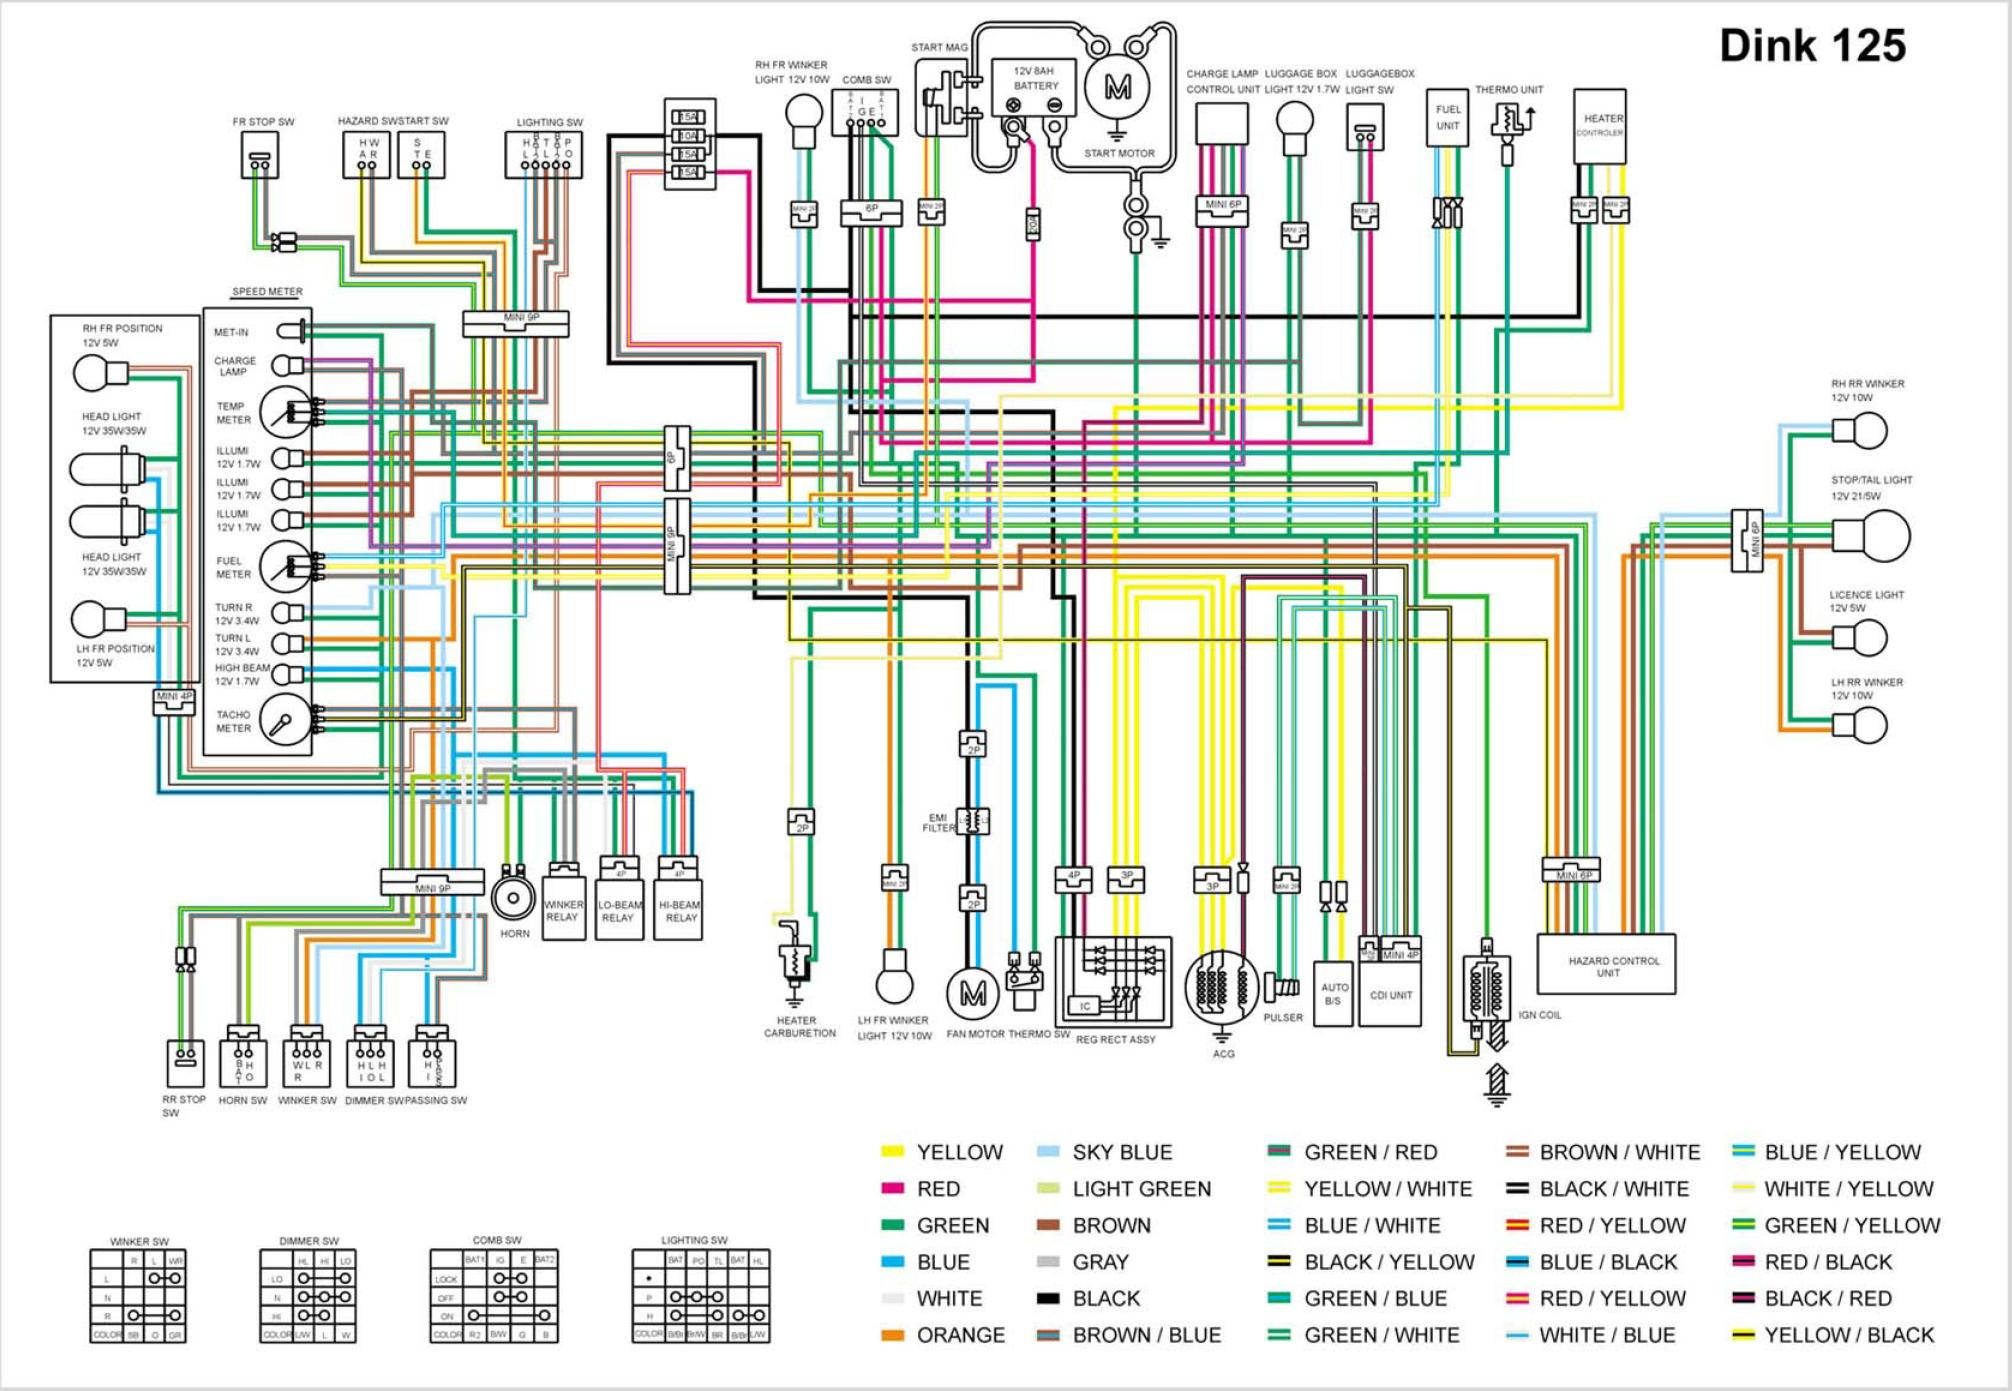 moto_schem_Kymco_Dink_125_D125?t=1438370286 kymco agility 125 wiring diagram idea di immagine del motociclo kymco super8 125 wiring diagram at readyjetset.co